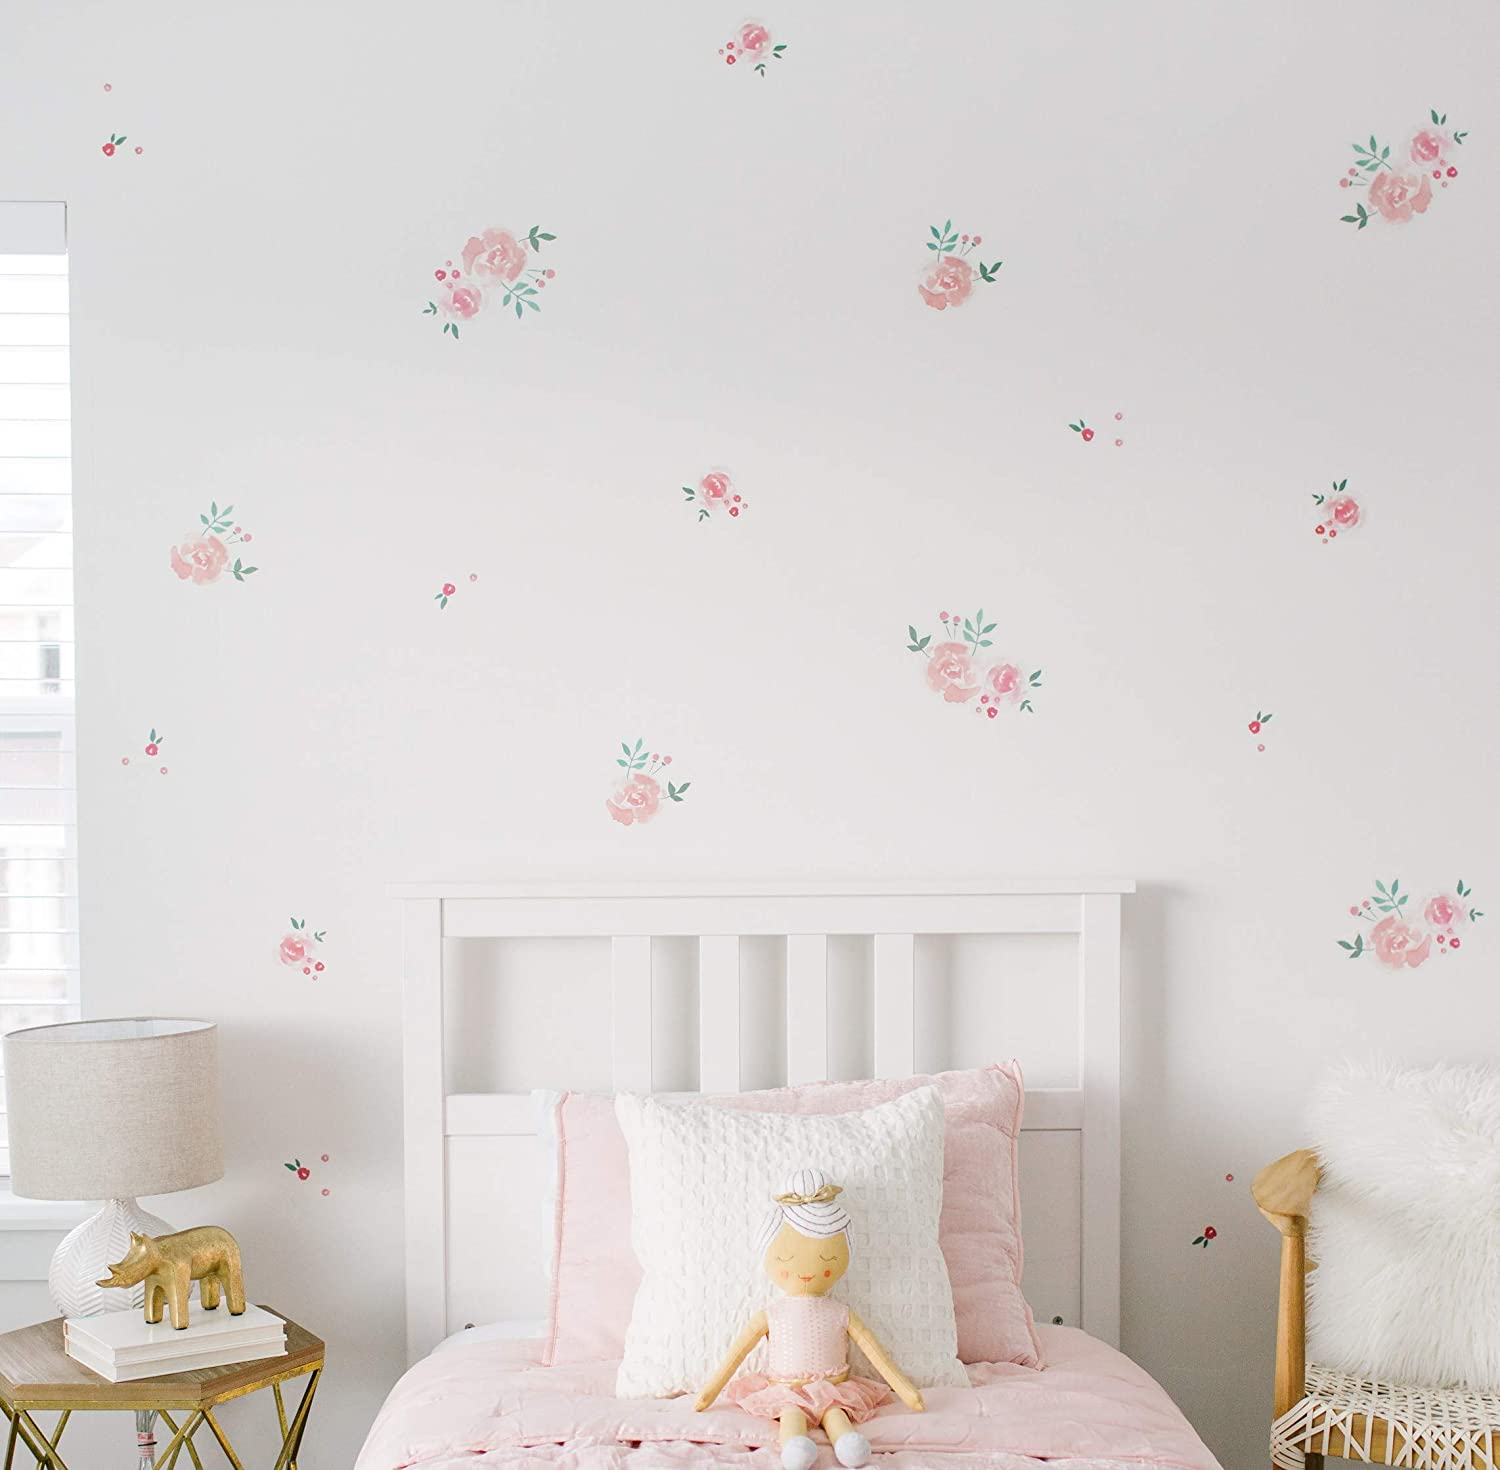 """Modern Maxwell Wall Art Decals for Girls Nursery, Bedroom, Living Room """"Emmy"""" Floral Room Sticker 56 Pieces"""